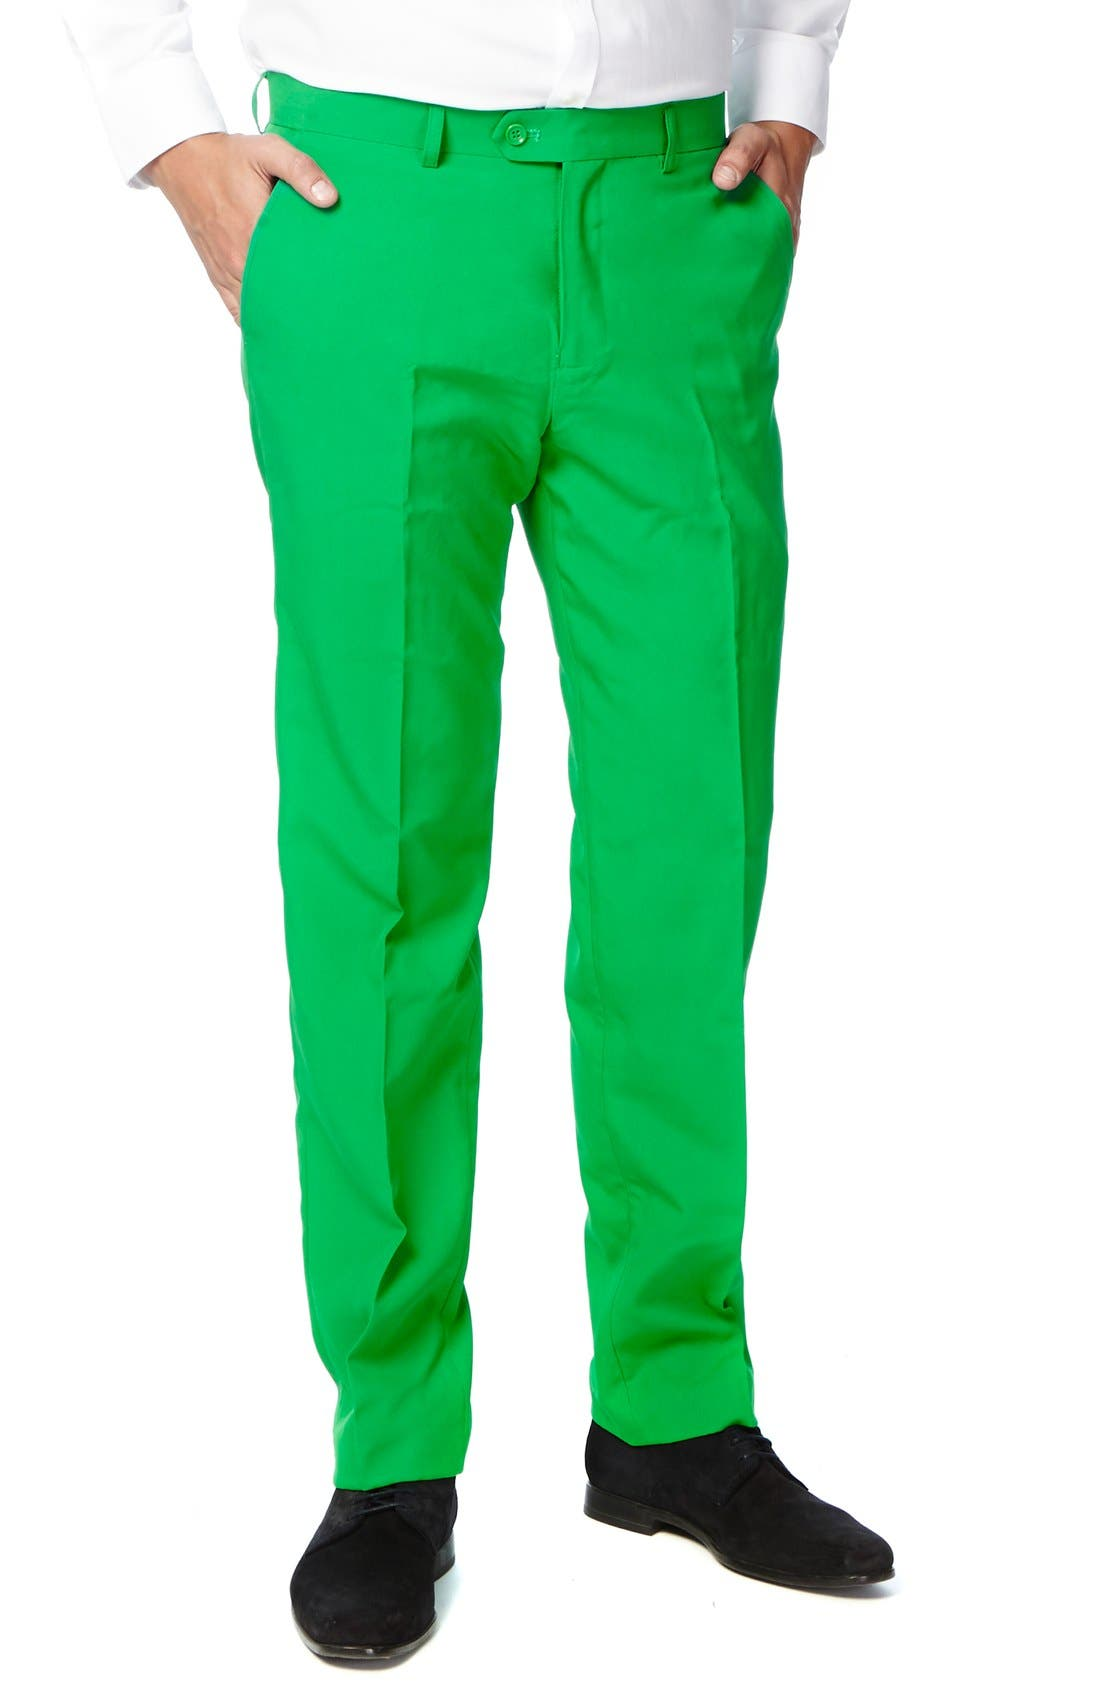 'Evergreen' Trim Fit Suit with Tie,                             Alternate thumbnail 3, color,                             Green